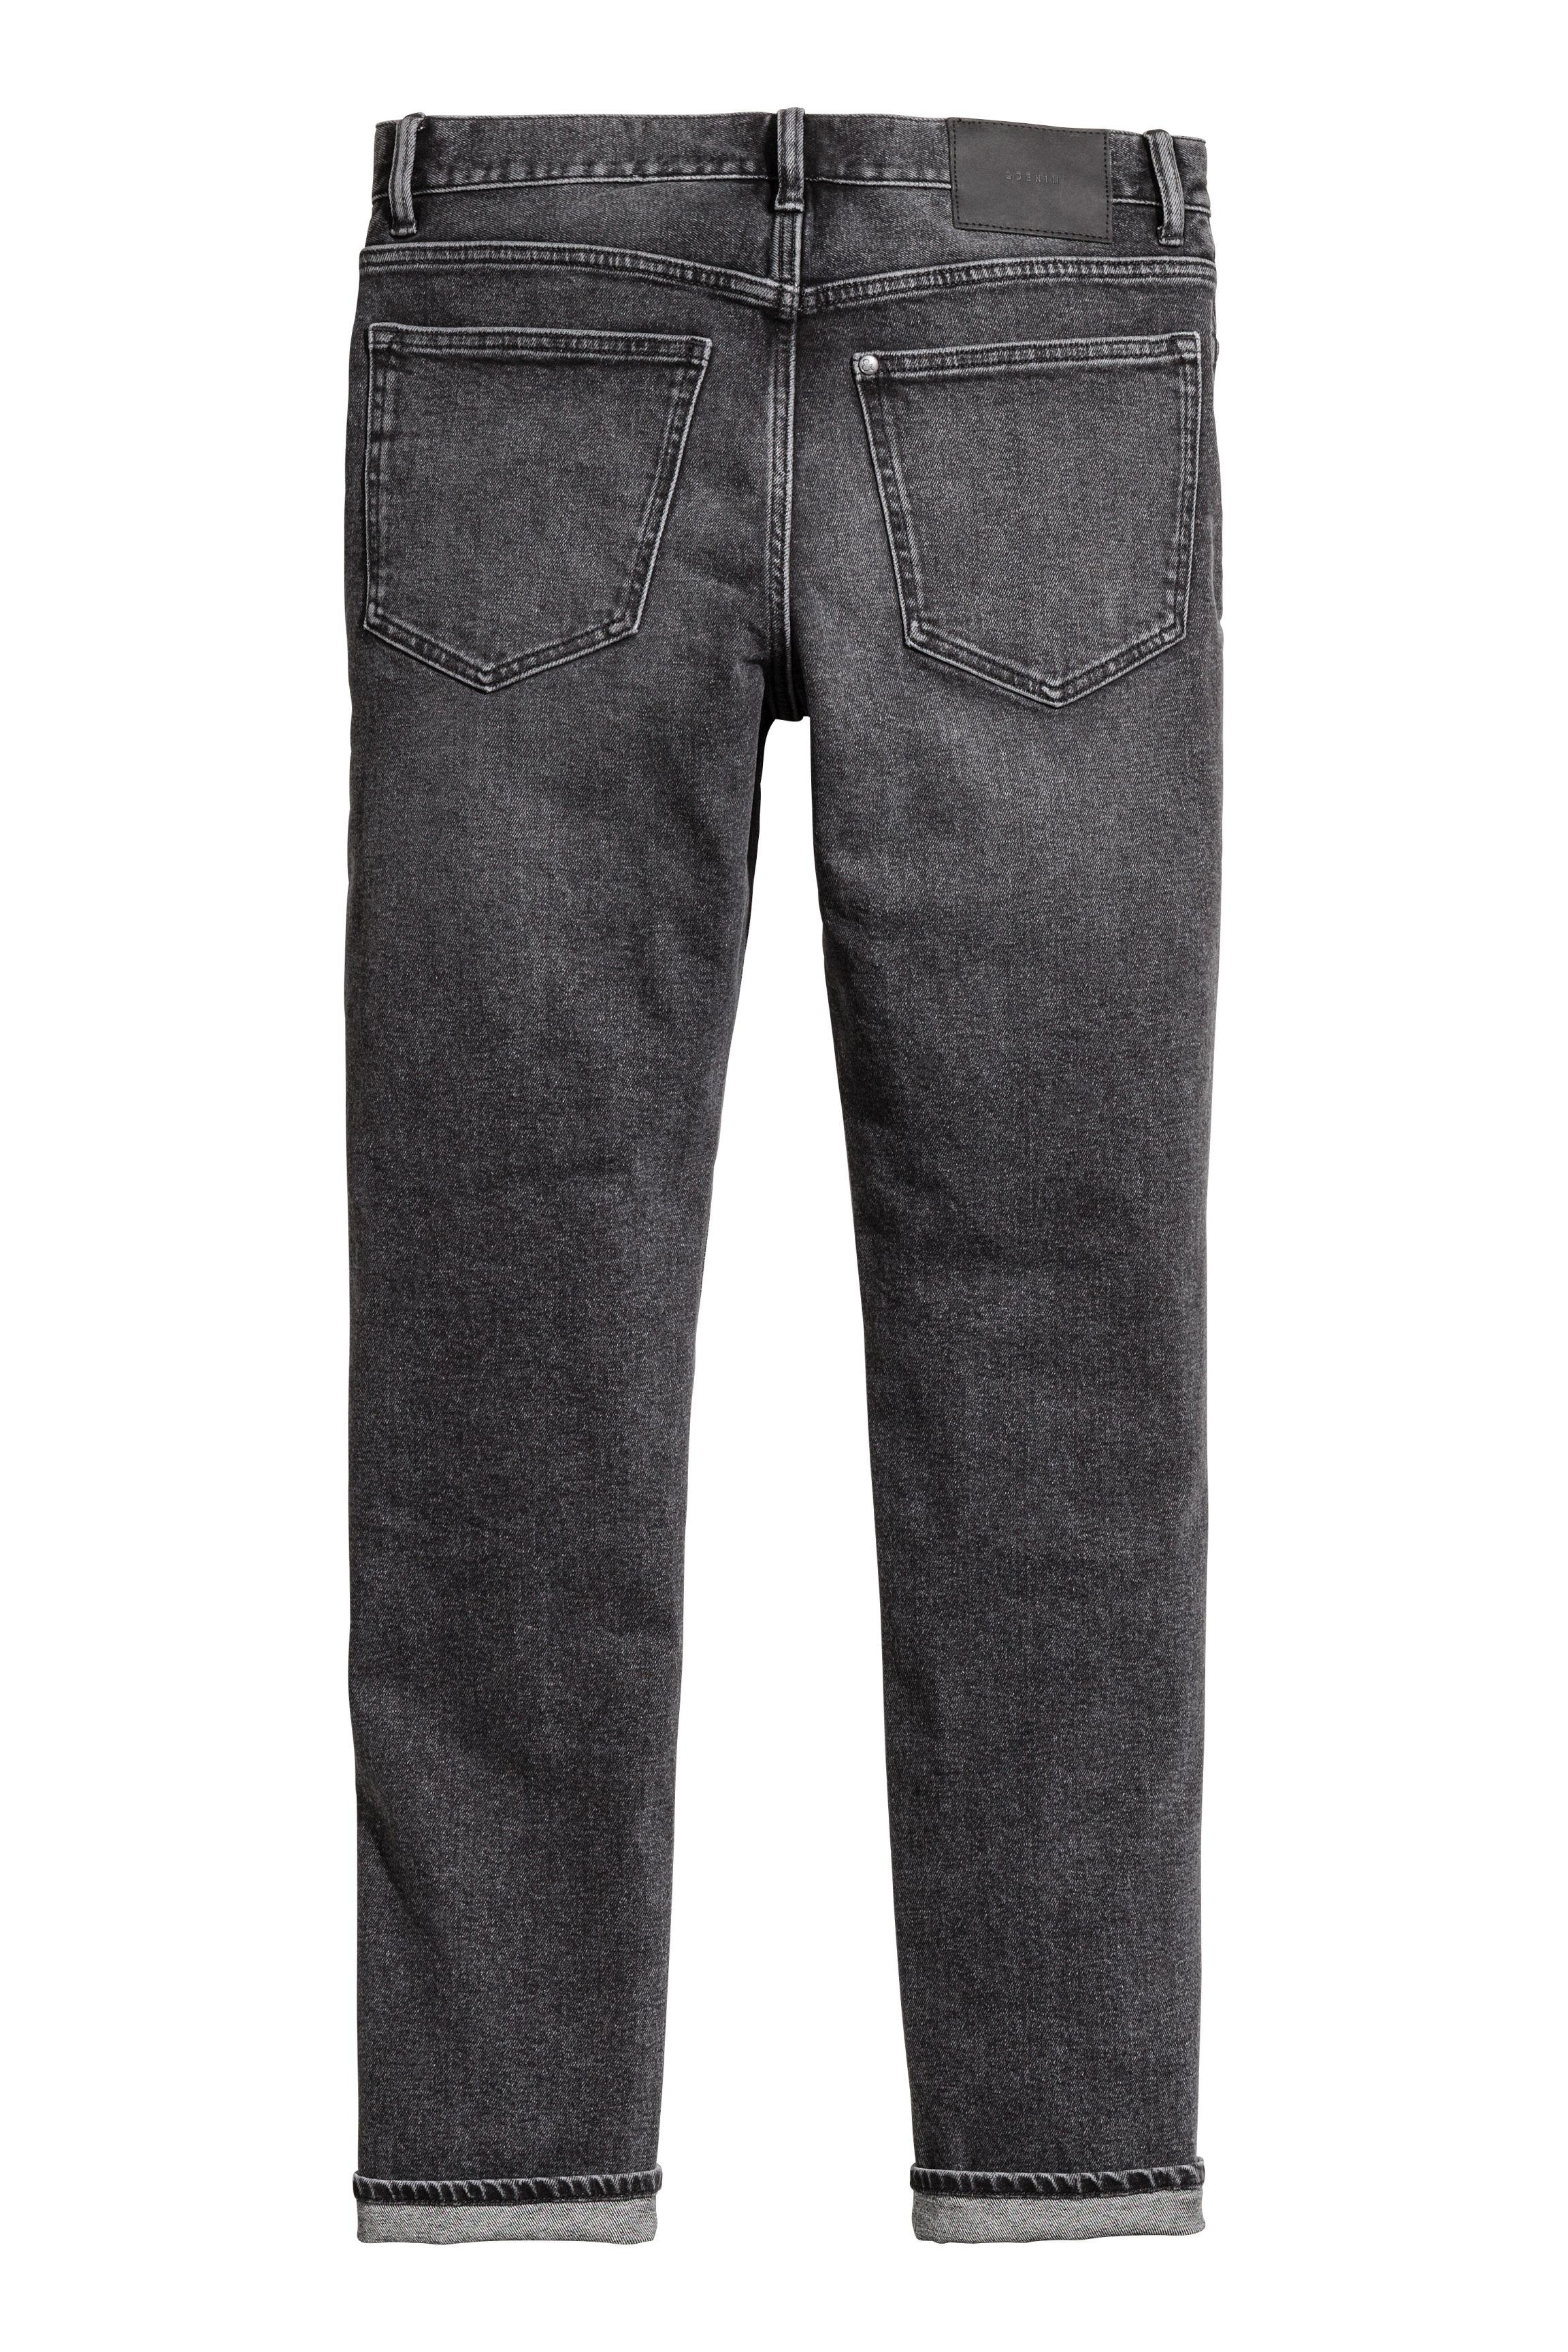 H&M Denim Relaxed Skinny Jeans in Grey for Men